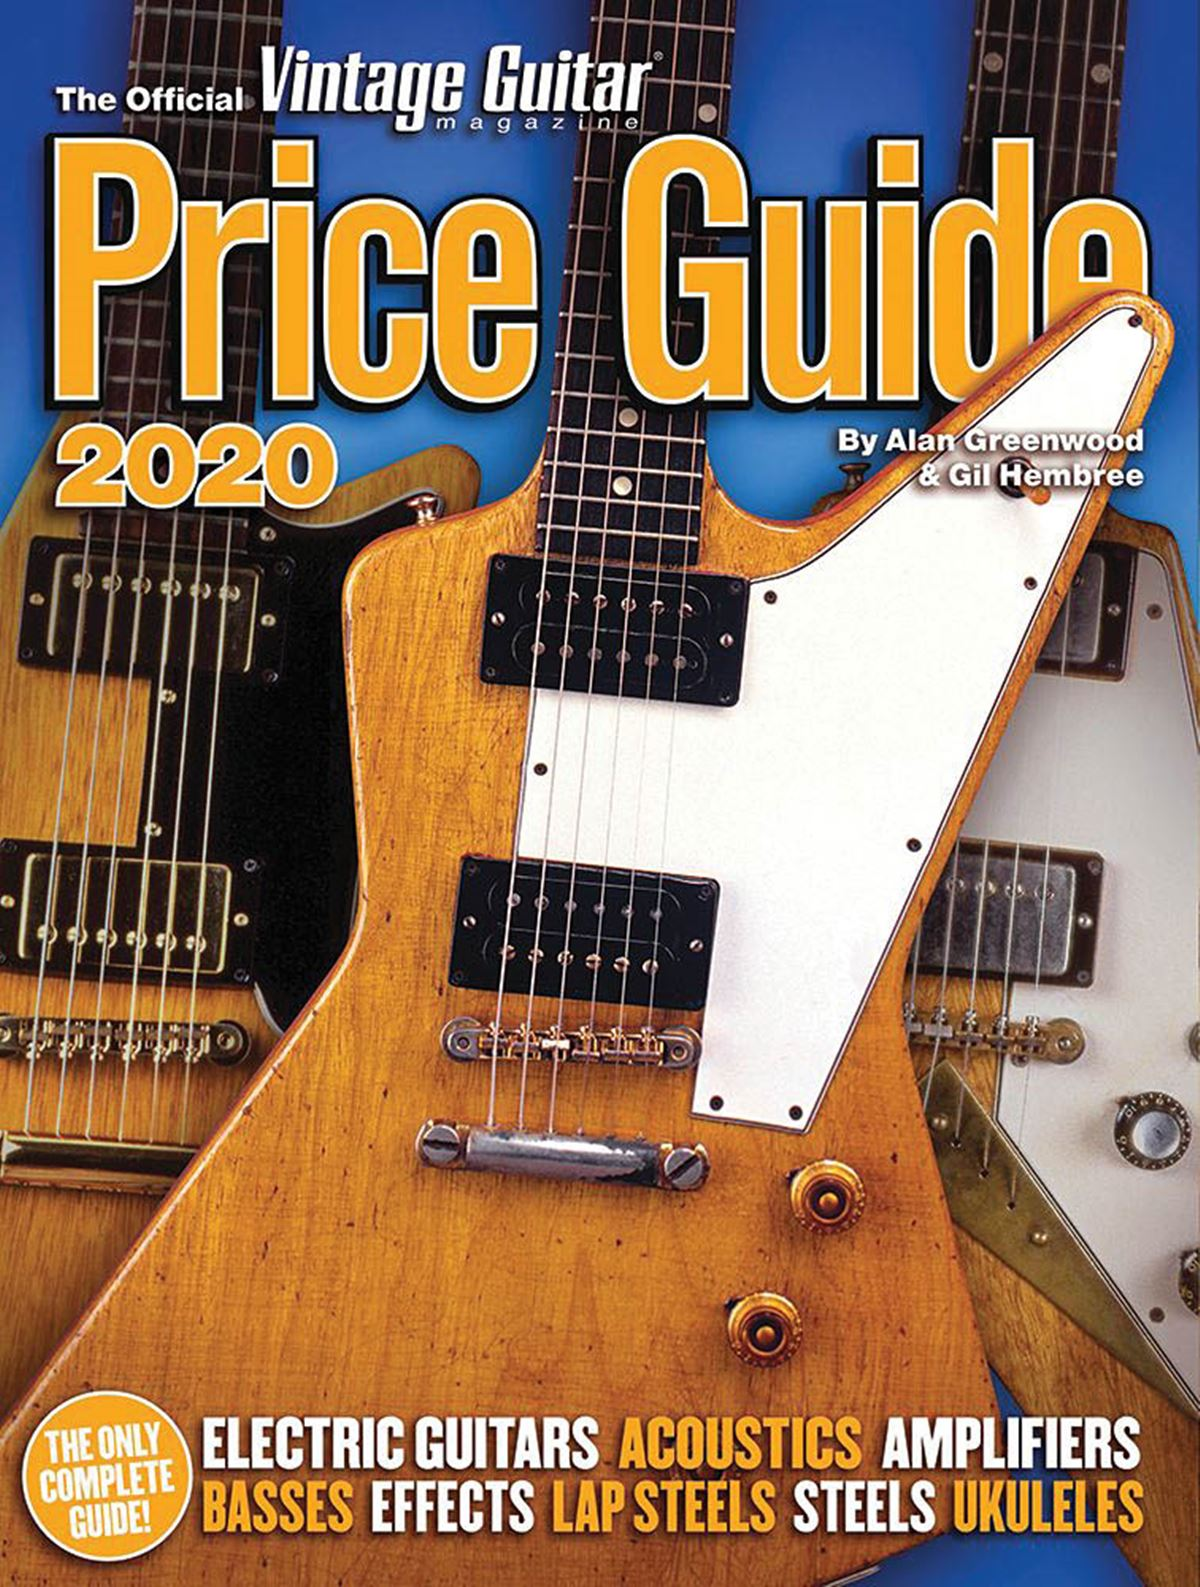 2020 Official Vintage Guitar Magazine Price Guide: Reference Books: Instrumental